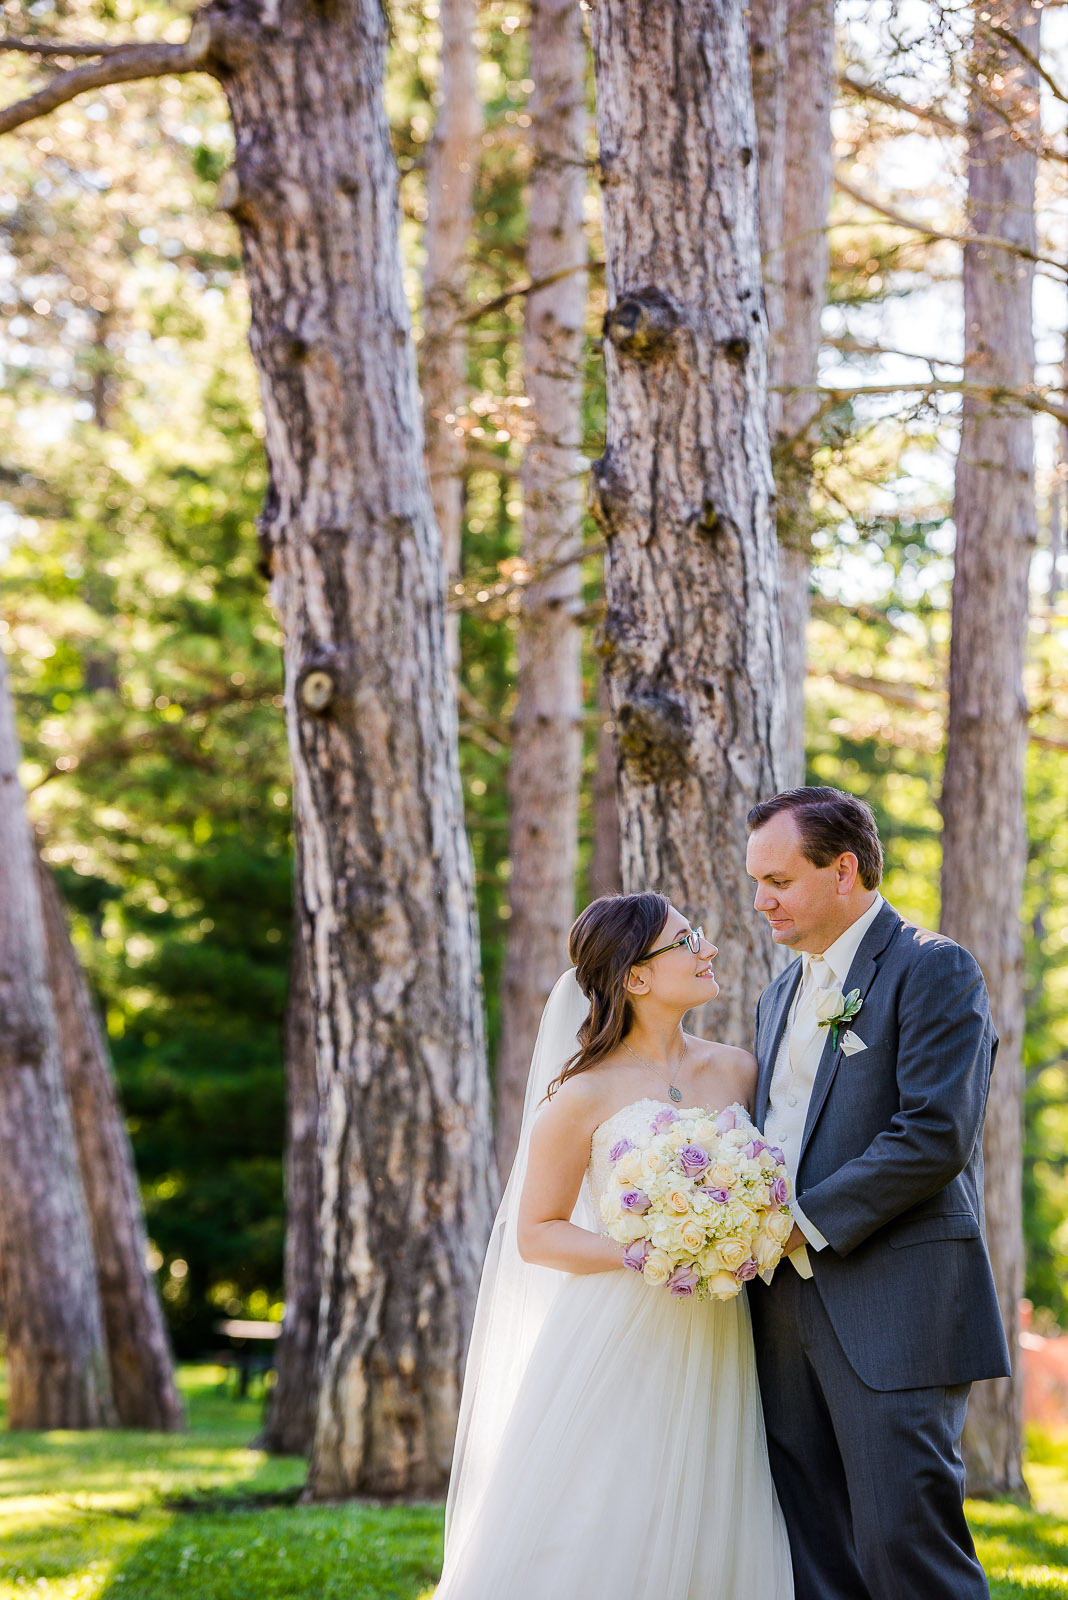 Eric_and_Christy_Photography_Blog_Julie_Adam_Wedding-44